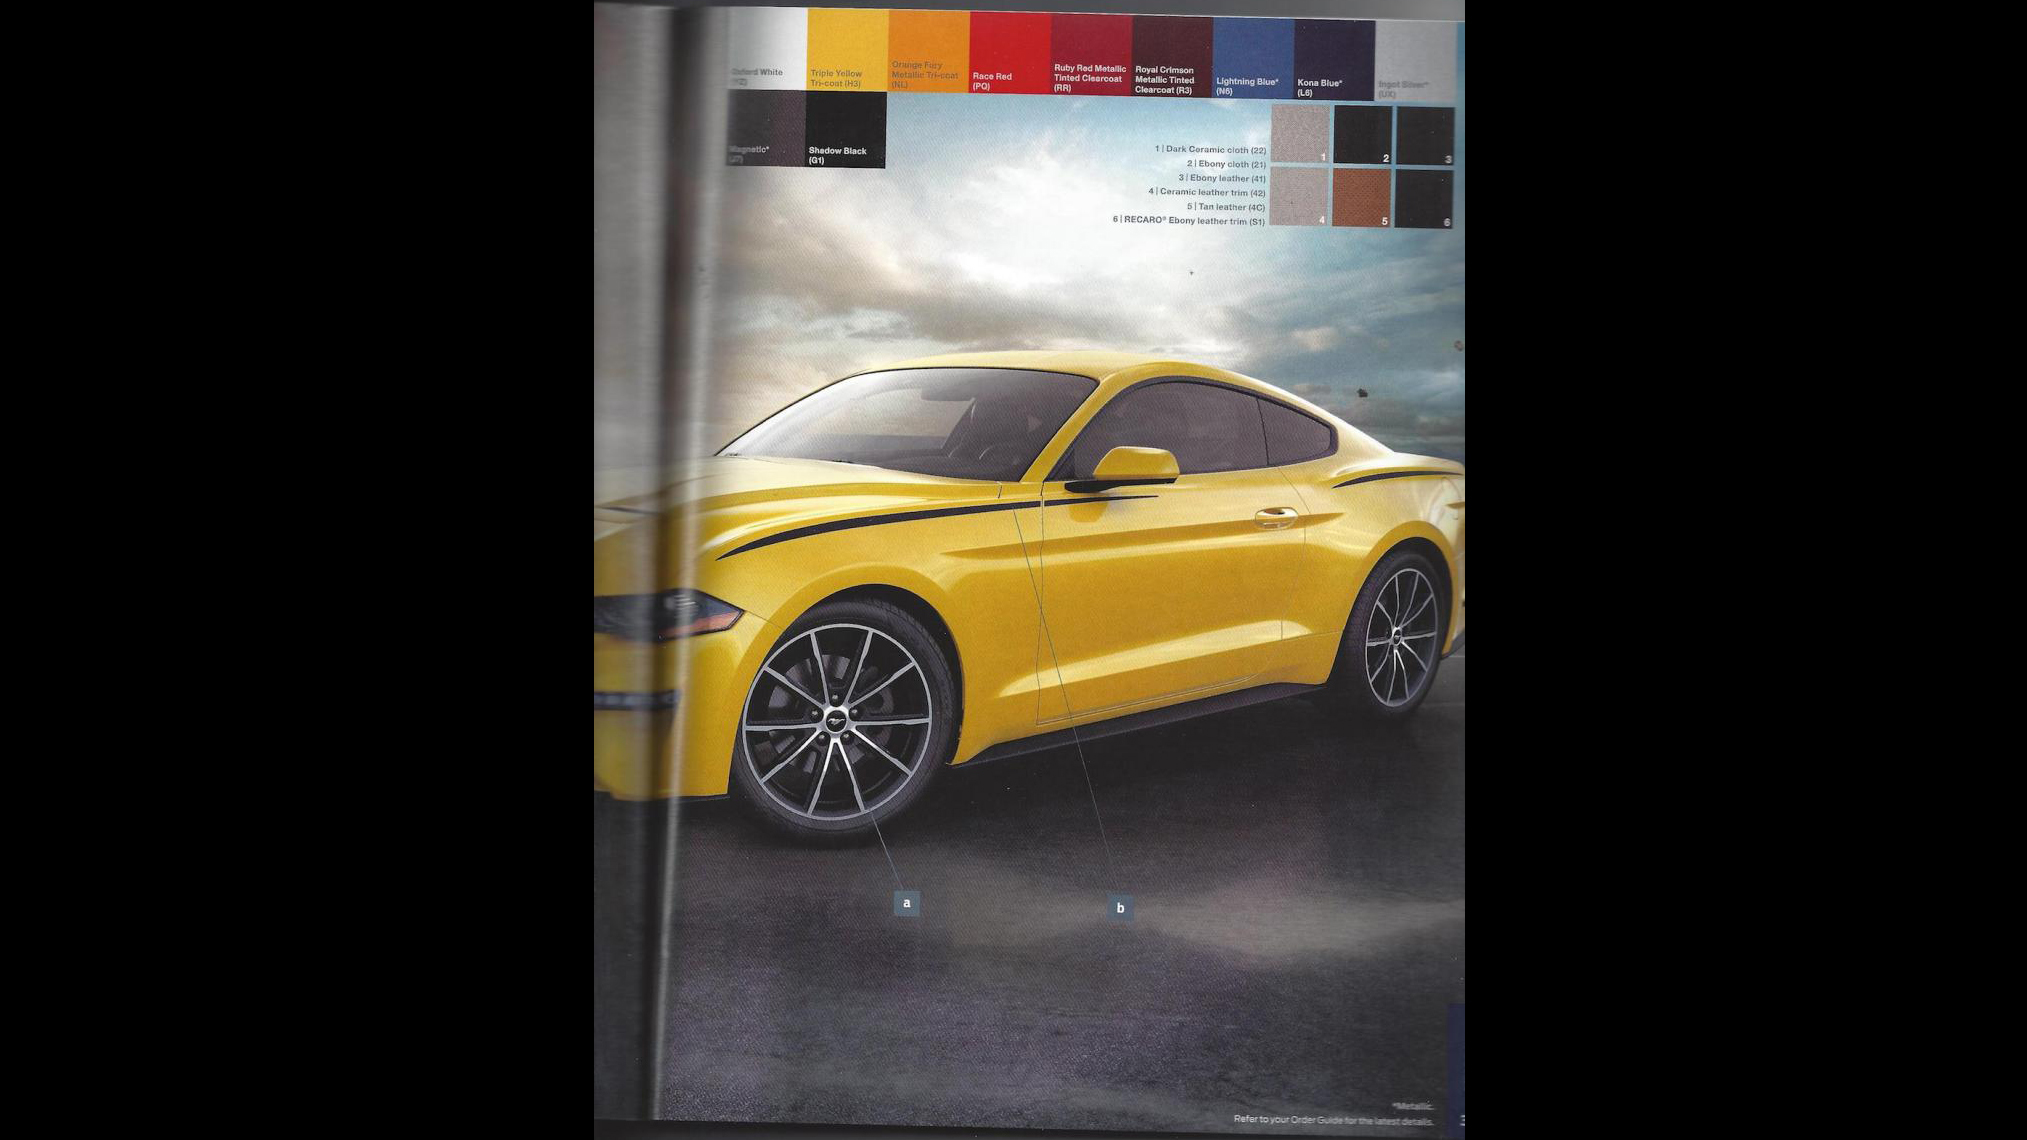 Ford Mustang 2018 Order Guide (9)